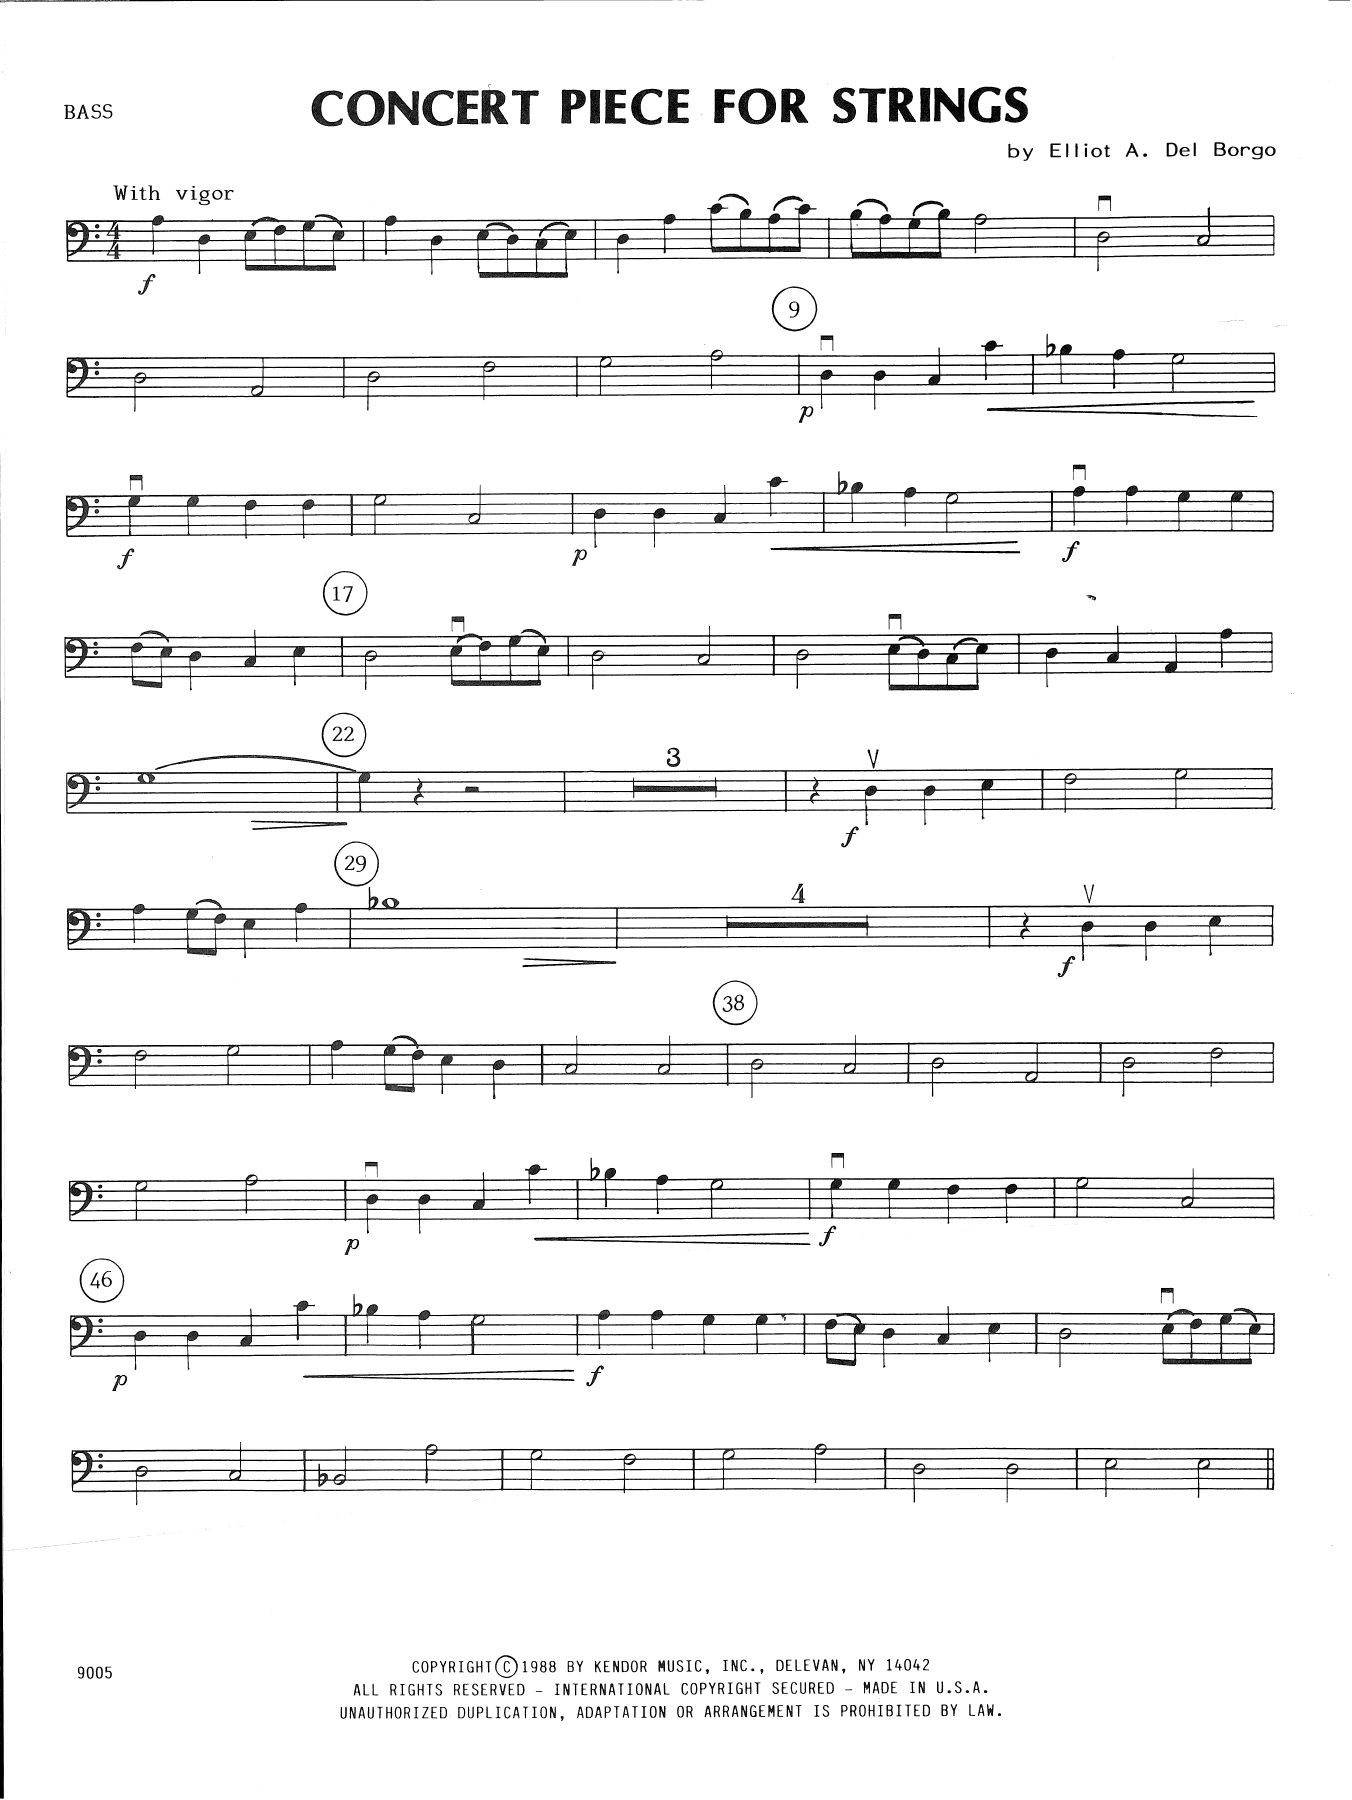 Elliot A. Del Borgo Concert Piece For Strings - Bass sheet music notes and chords. Download Printable PDF.